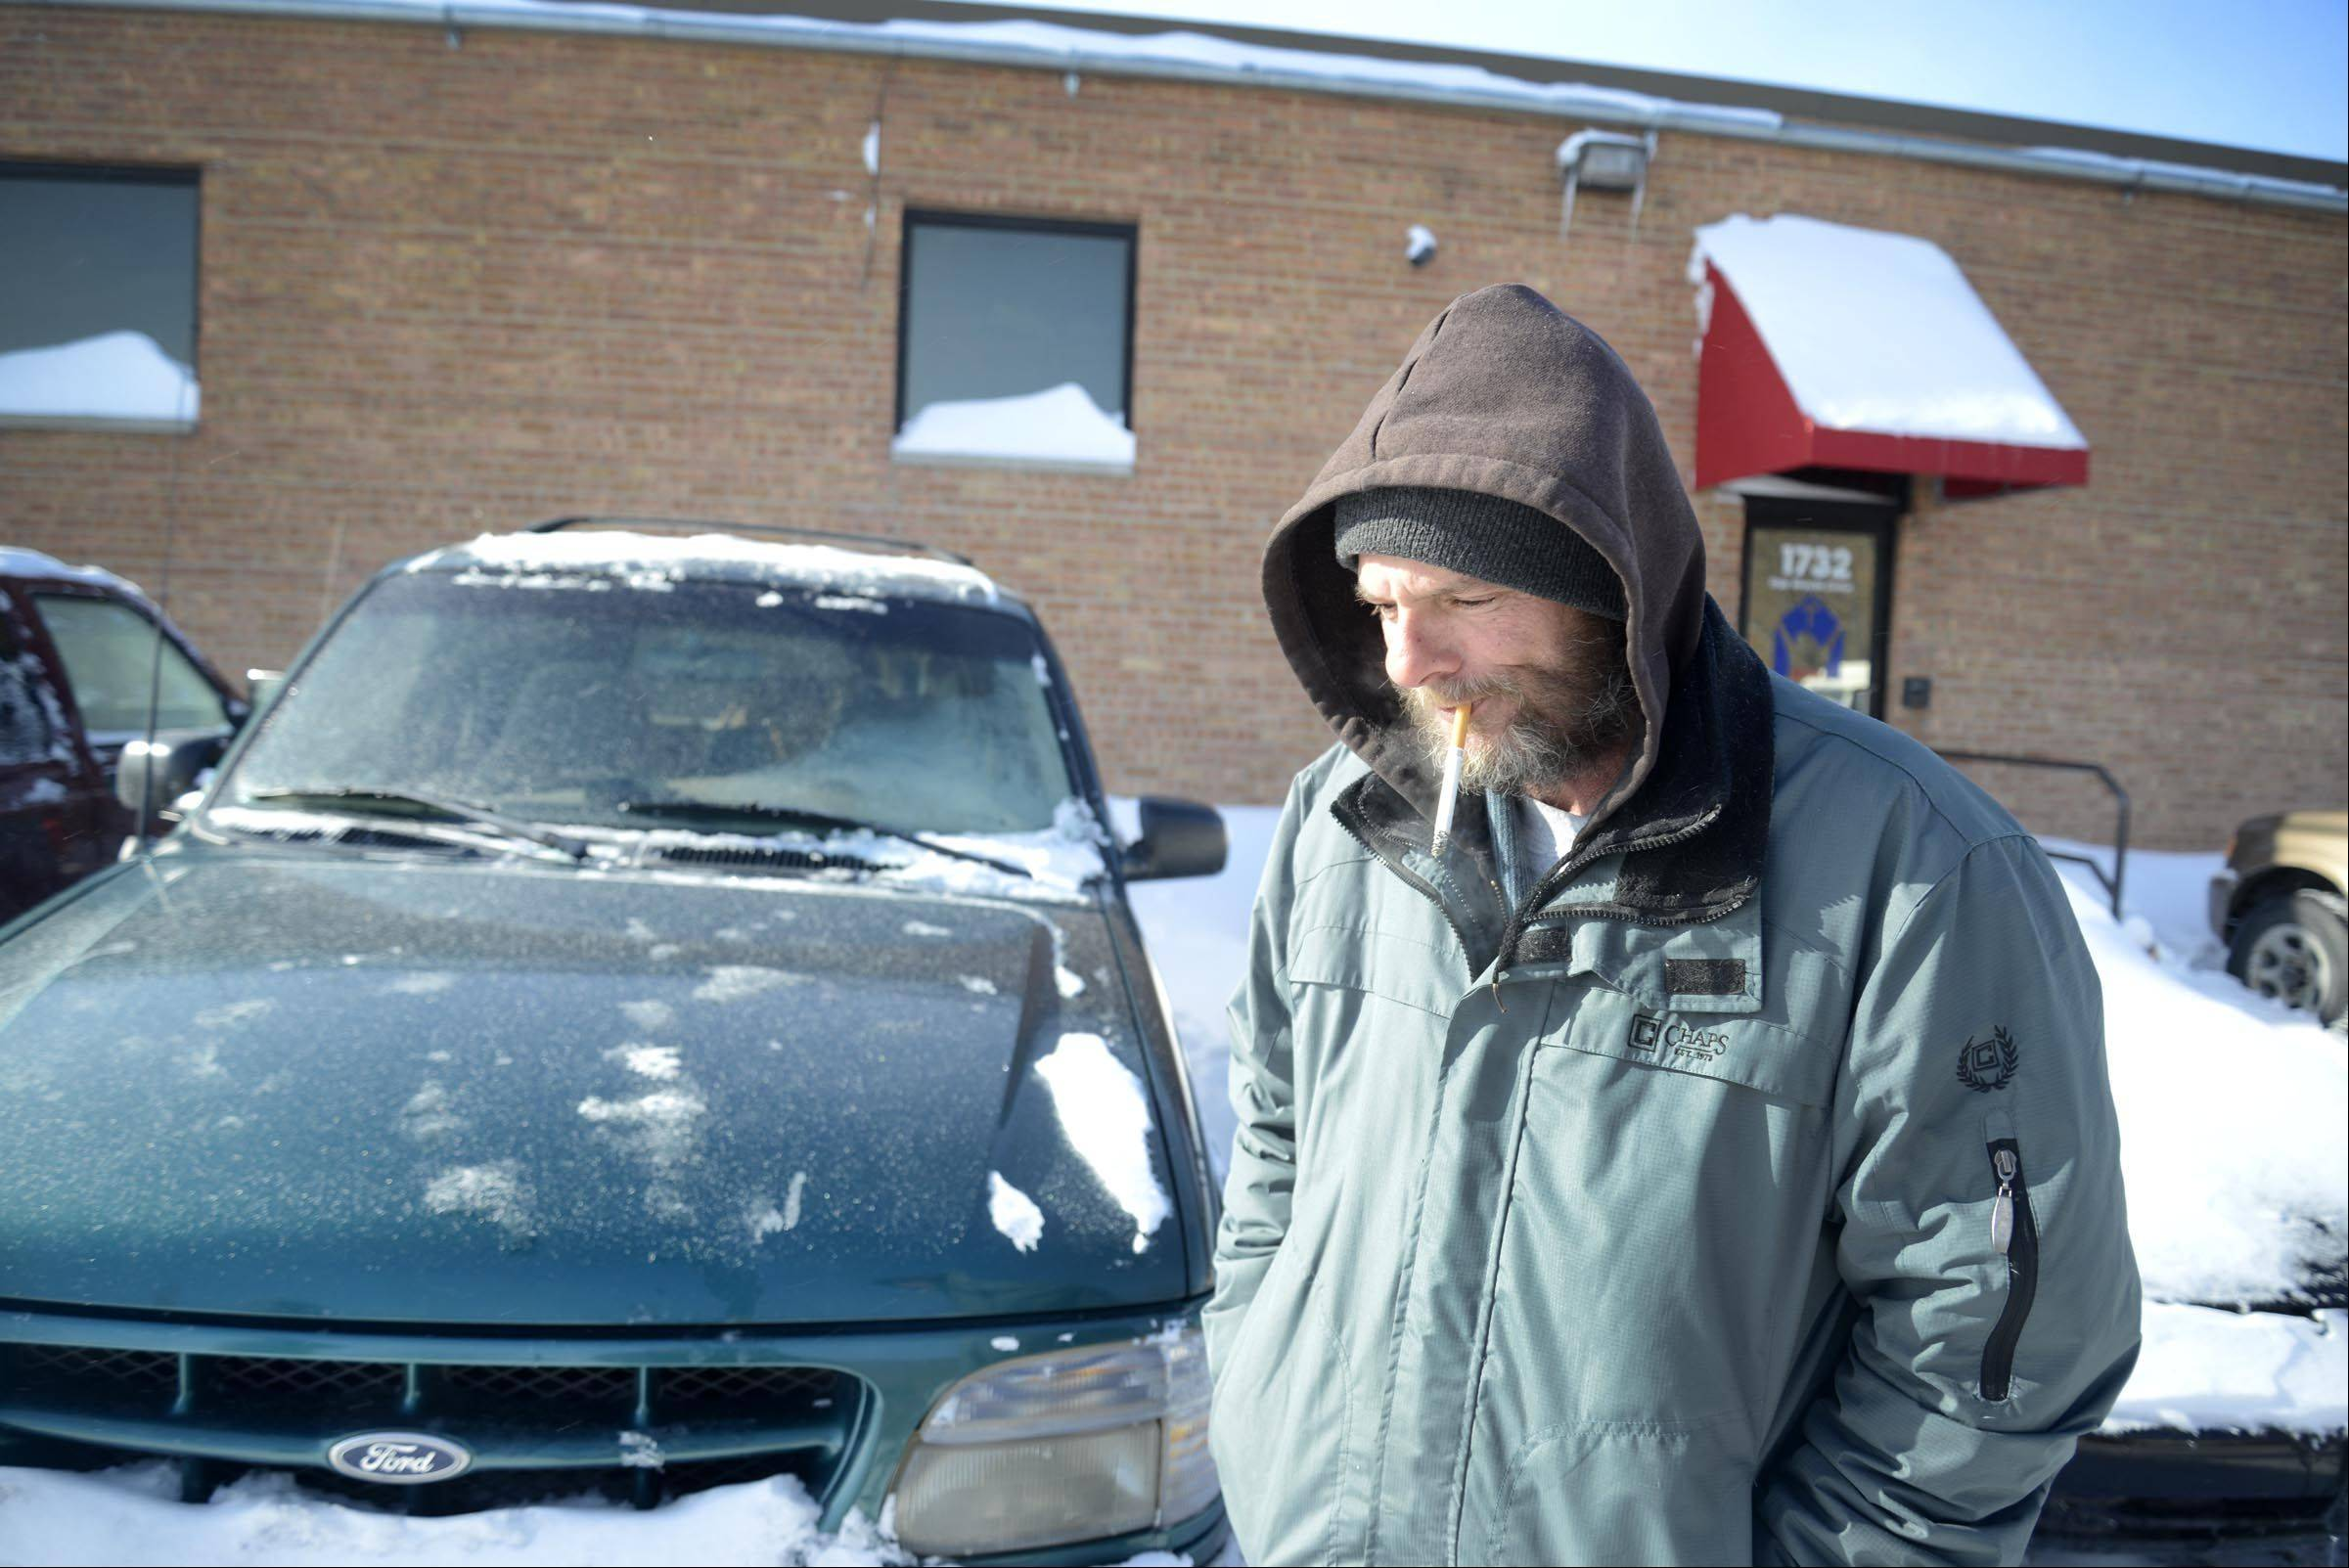 Suburban groups work to help homeless survive dangerous cold